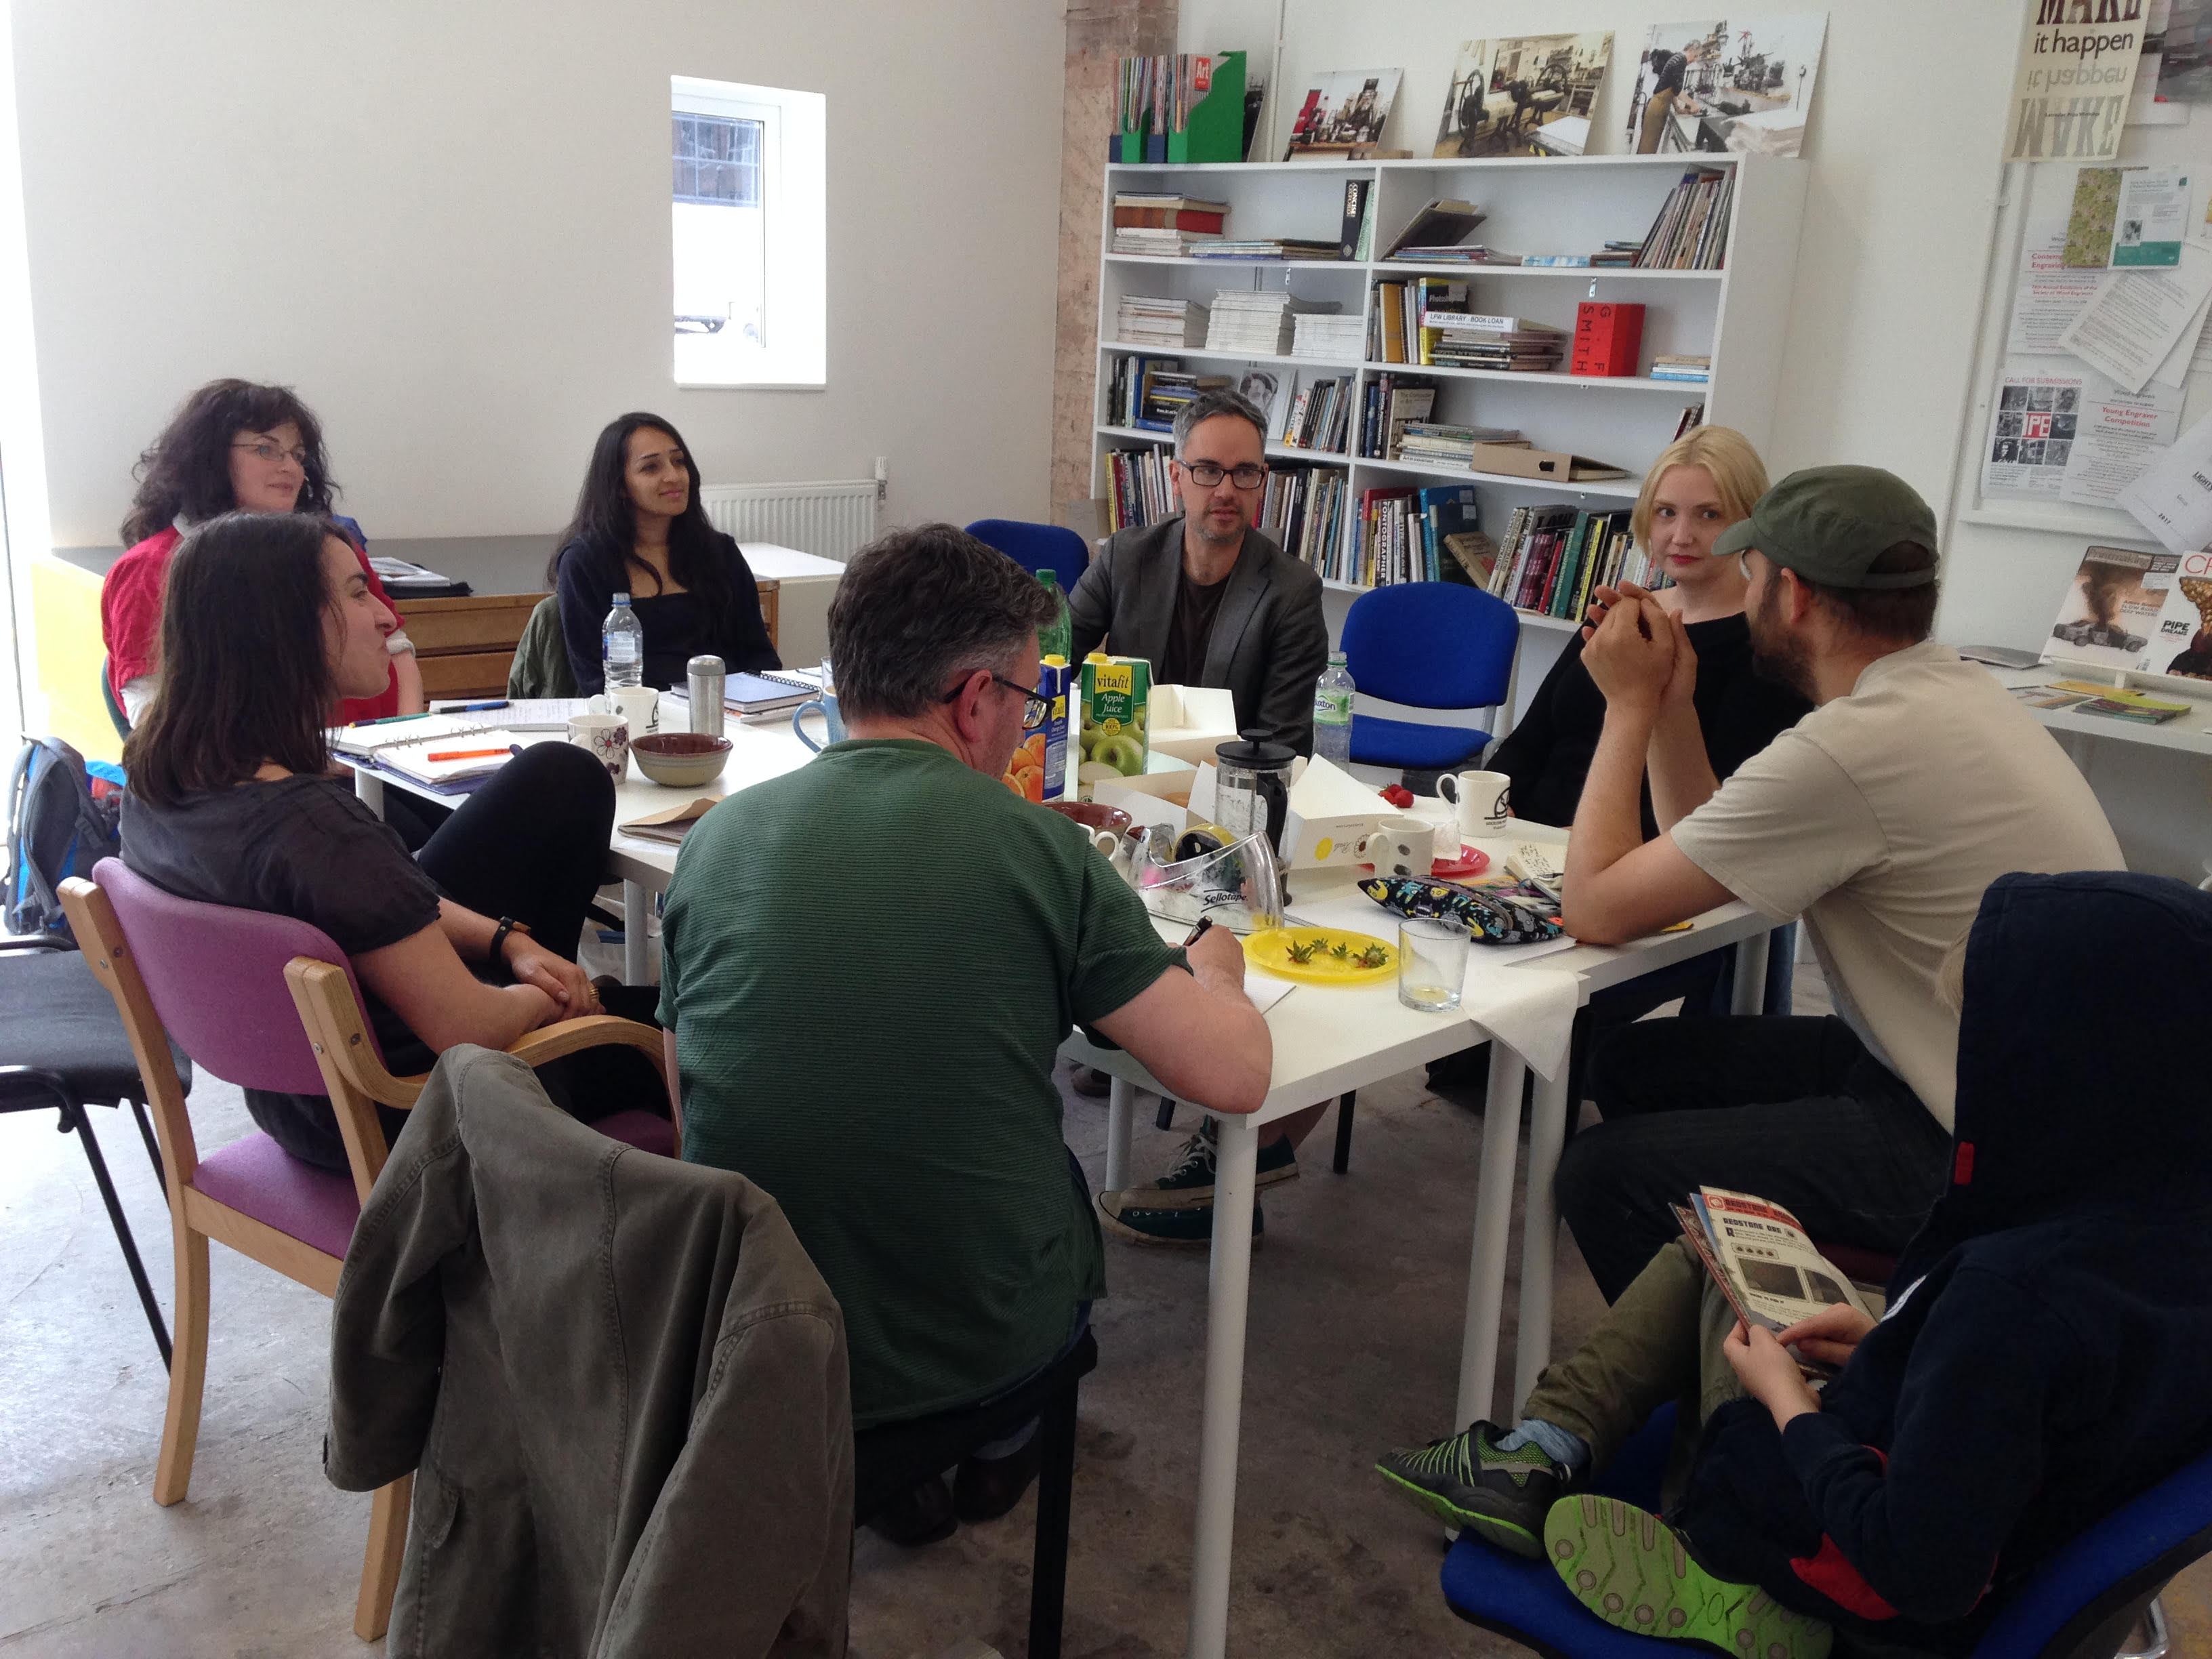 Document: artists meet for the first time